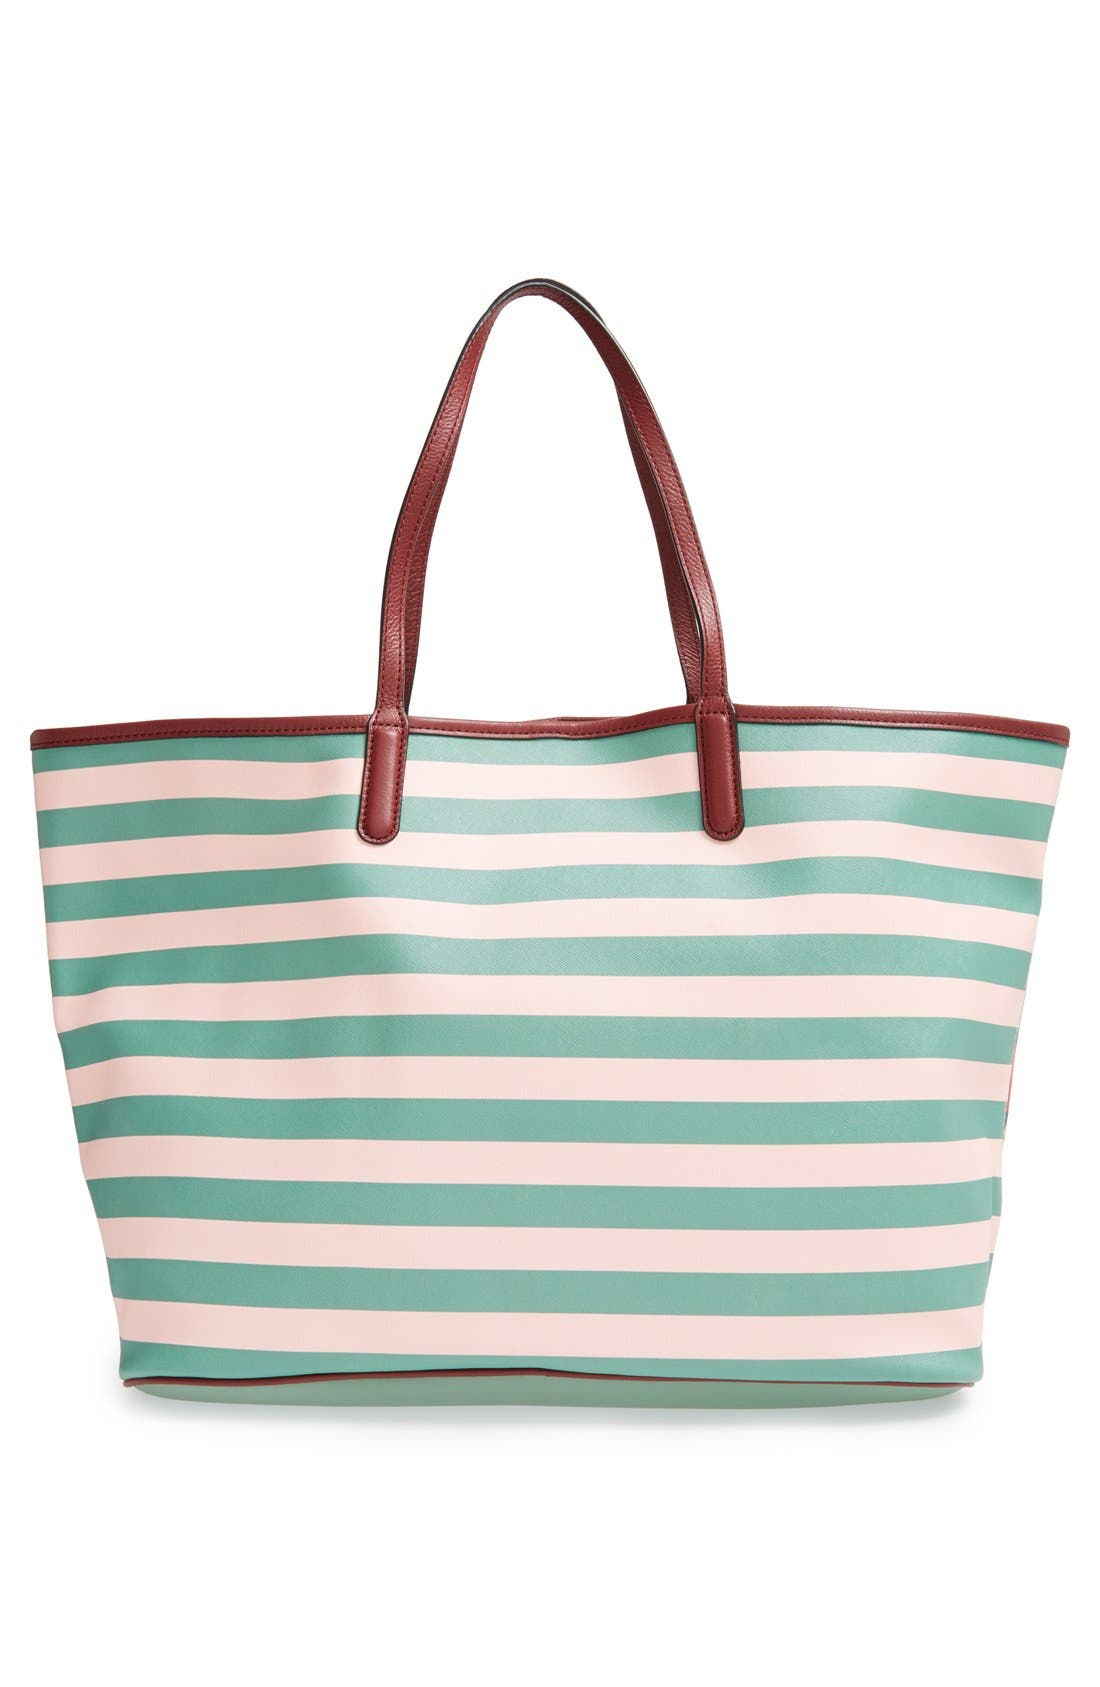 MARC JACOBS,                             MARC BY MARC JACOBS Large Beach Tote,                             Alternate thumbnail 5, color,                             650